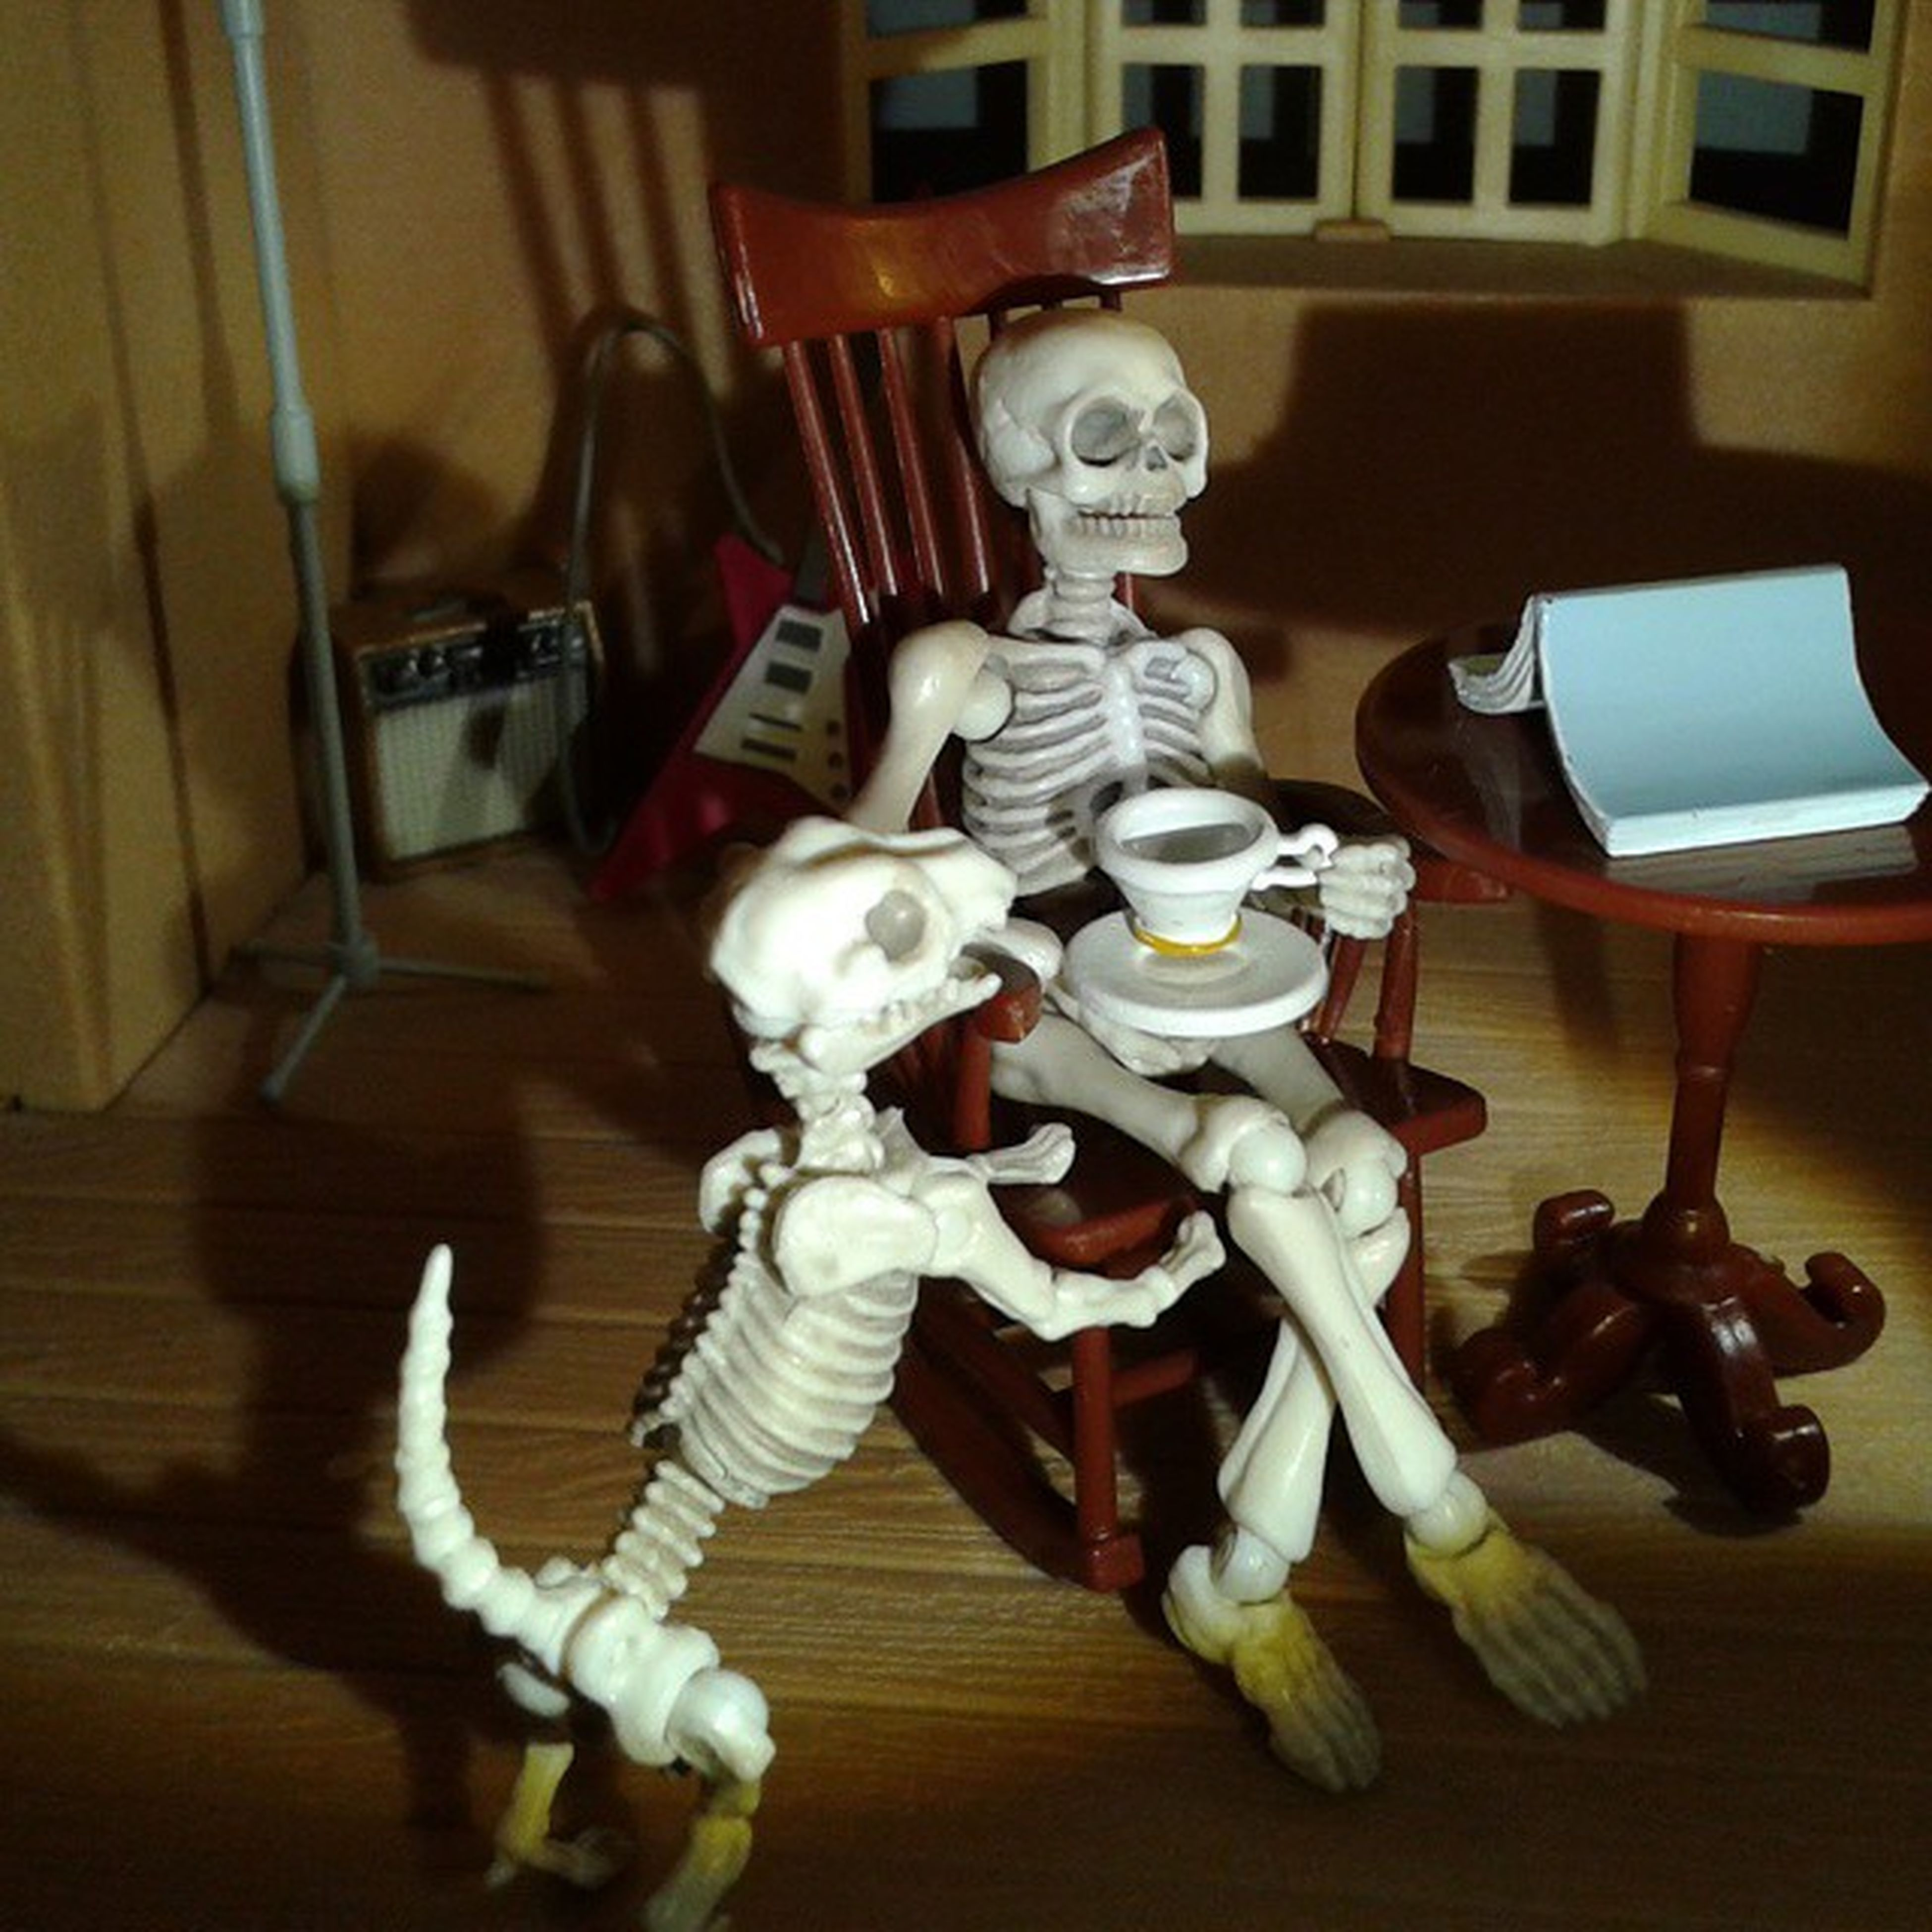 Gary, the Rement Poseskeleton , relaxing at home with a nice Cuppa , a good book, and his trusty Dog . ********** Toy Toys Toygroup_alliance Toyphotogallery Toyphotography Toyartistry Toyplanet Toys4life Toycrewbuddies Toyslagram Actionfigure Japan Nippon Skeleton Tea TheGoodAfterlife . Toyunion